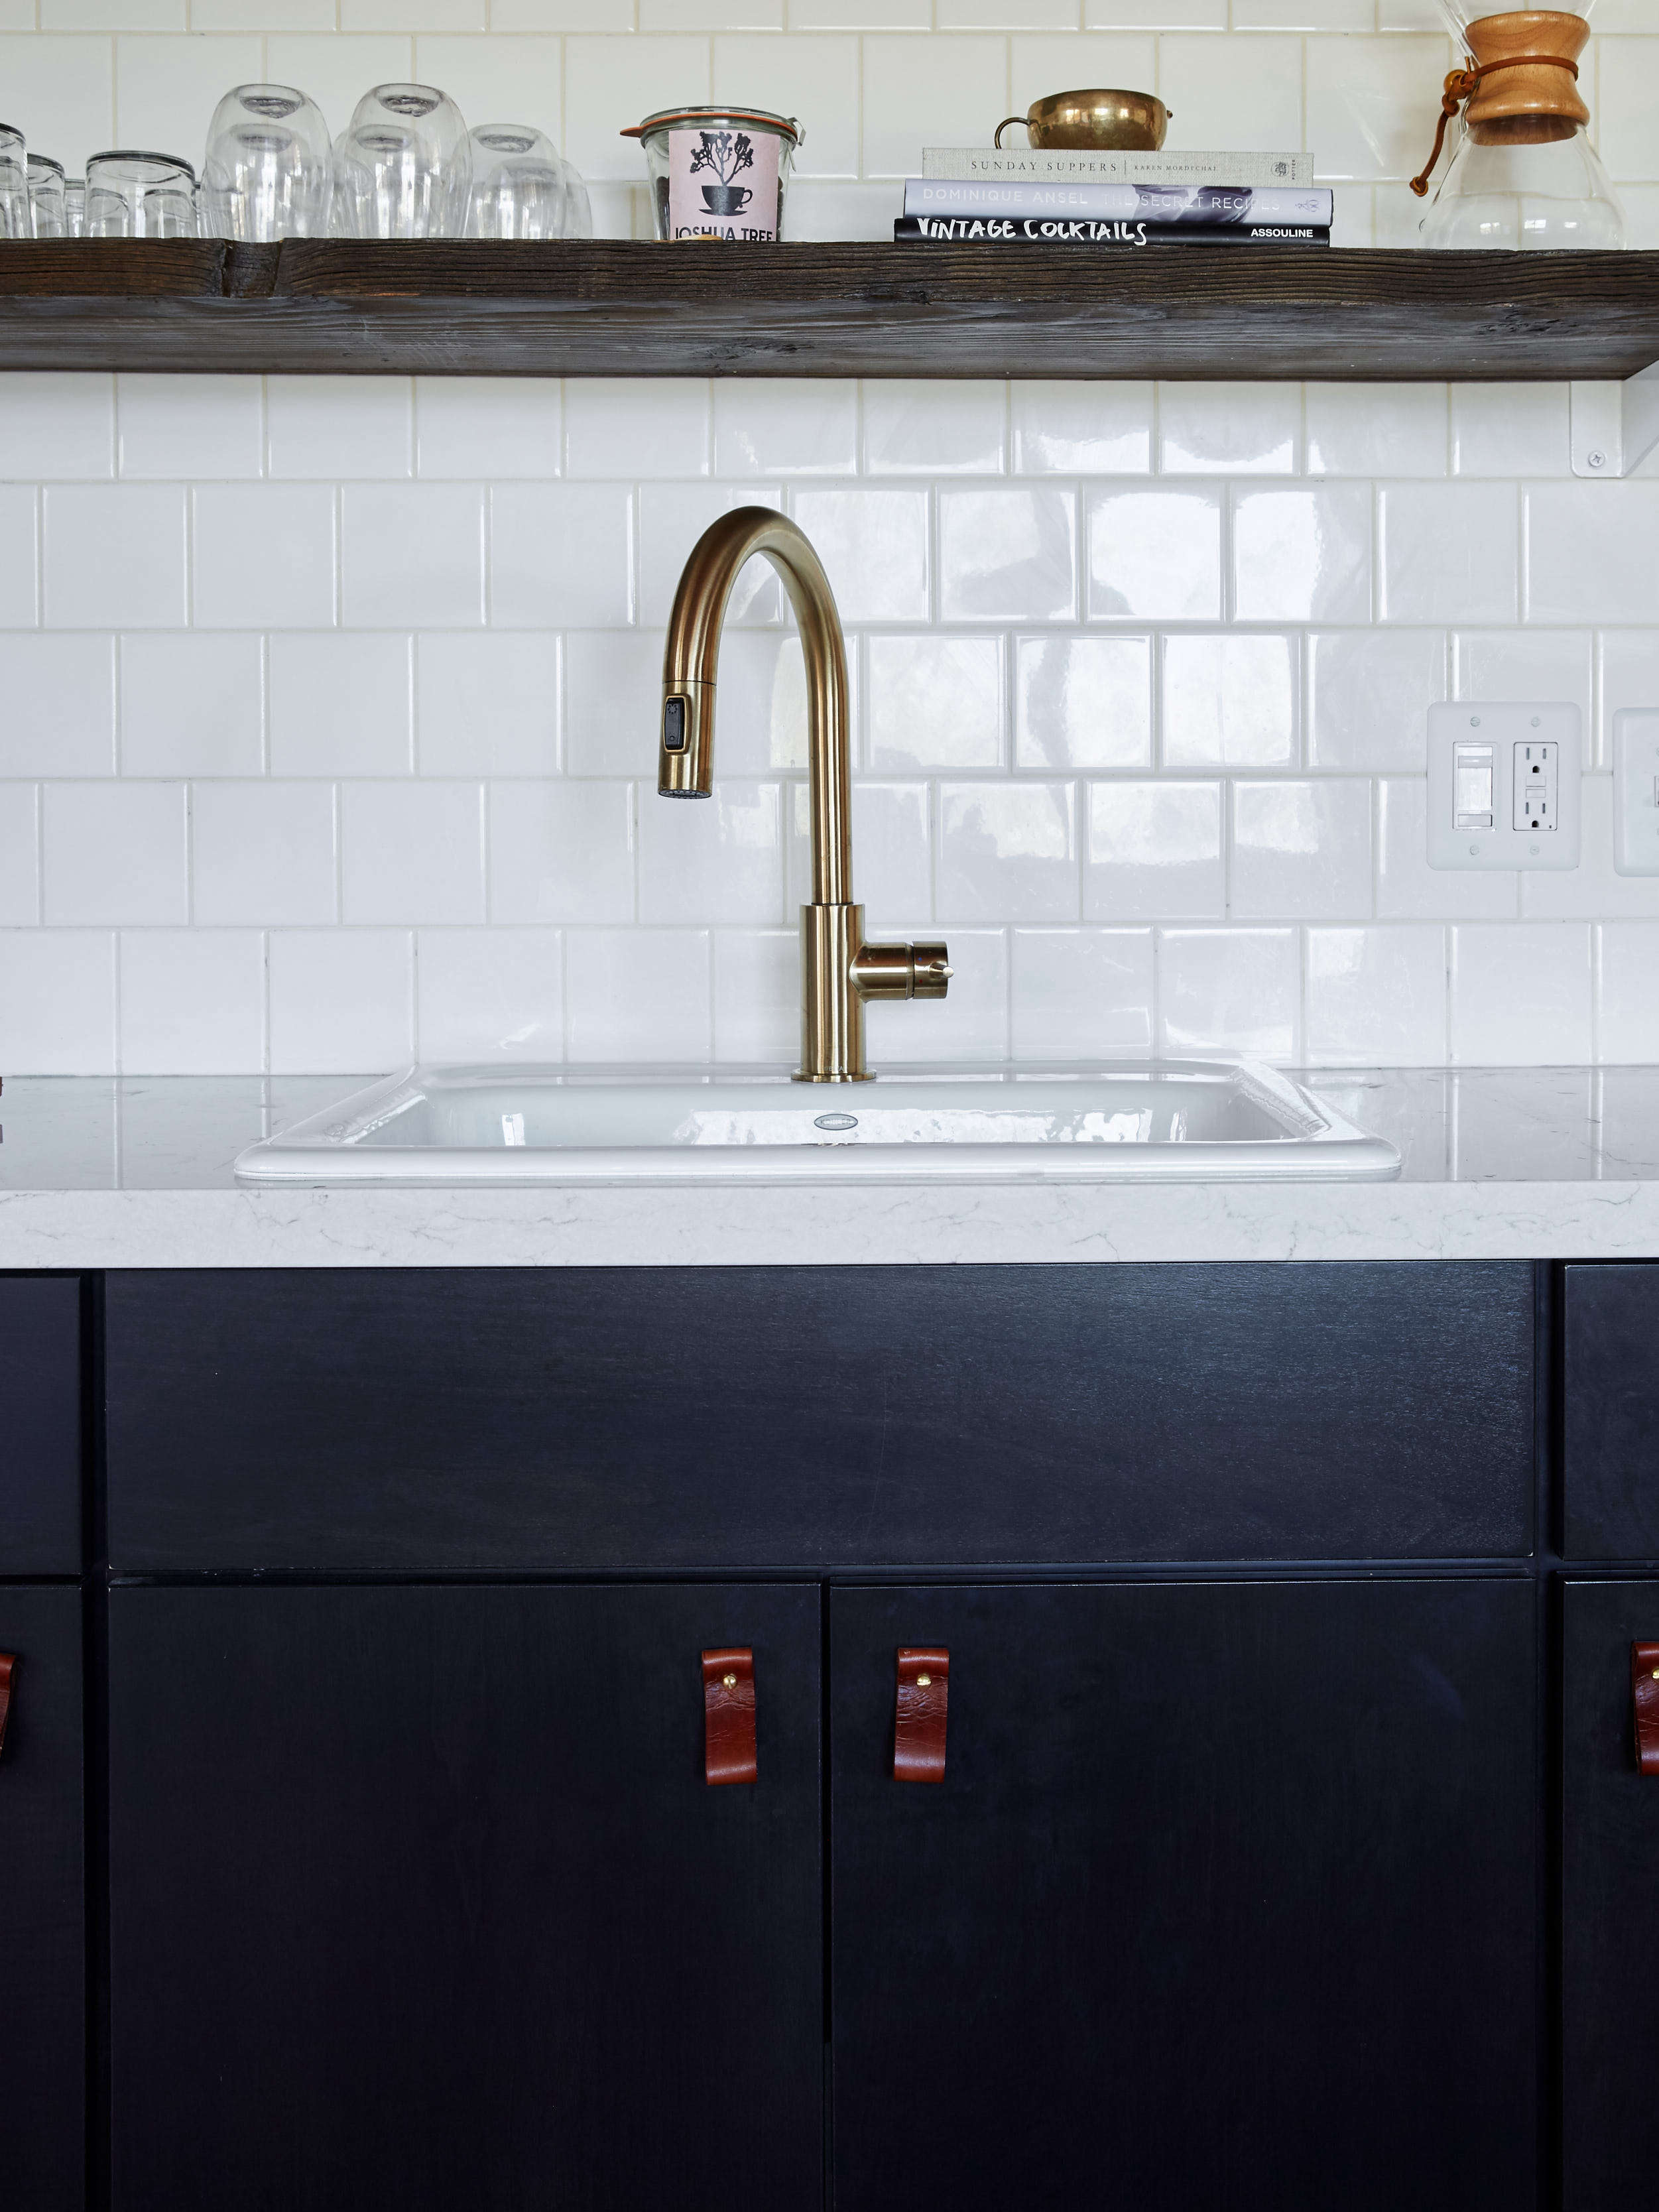 joshua tree casita airbnb black kitchen cabinets from home depot with DIY leather cabinet pulls, kate sears photo